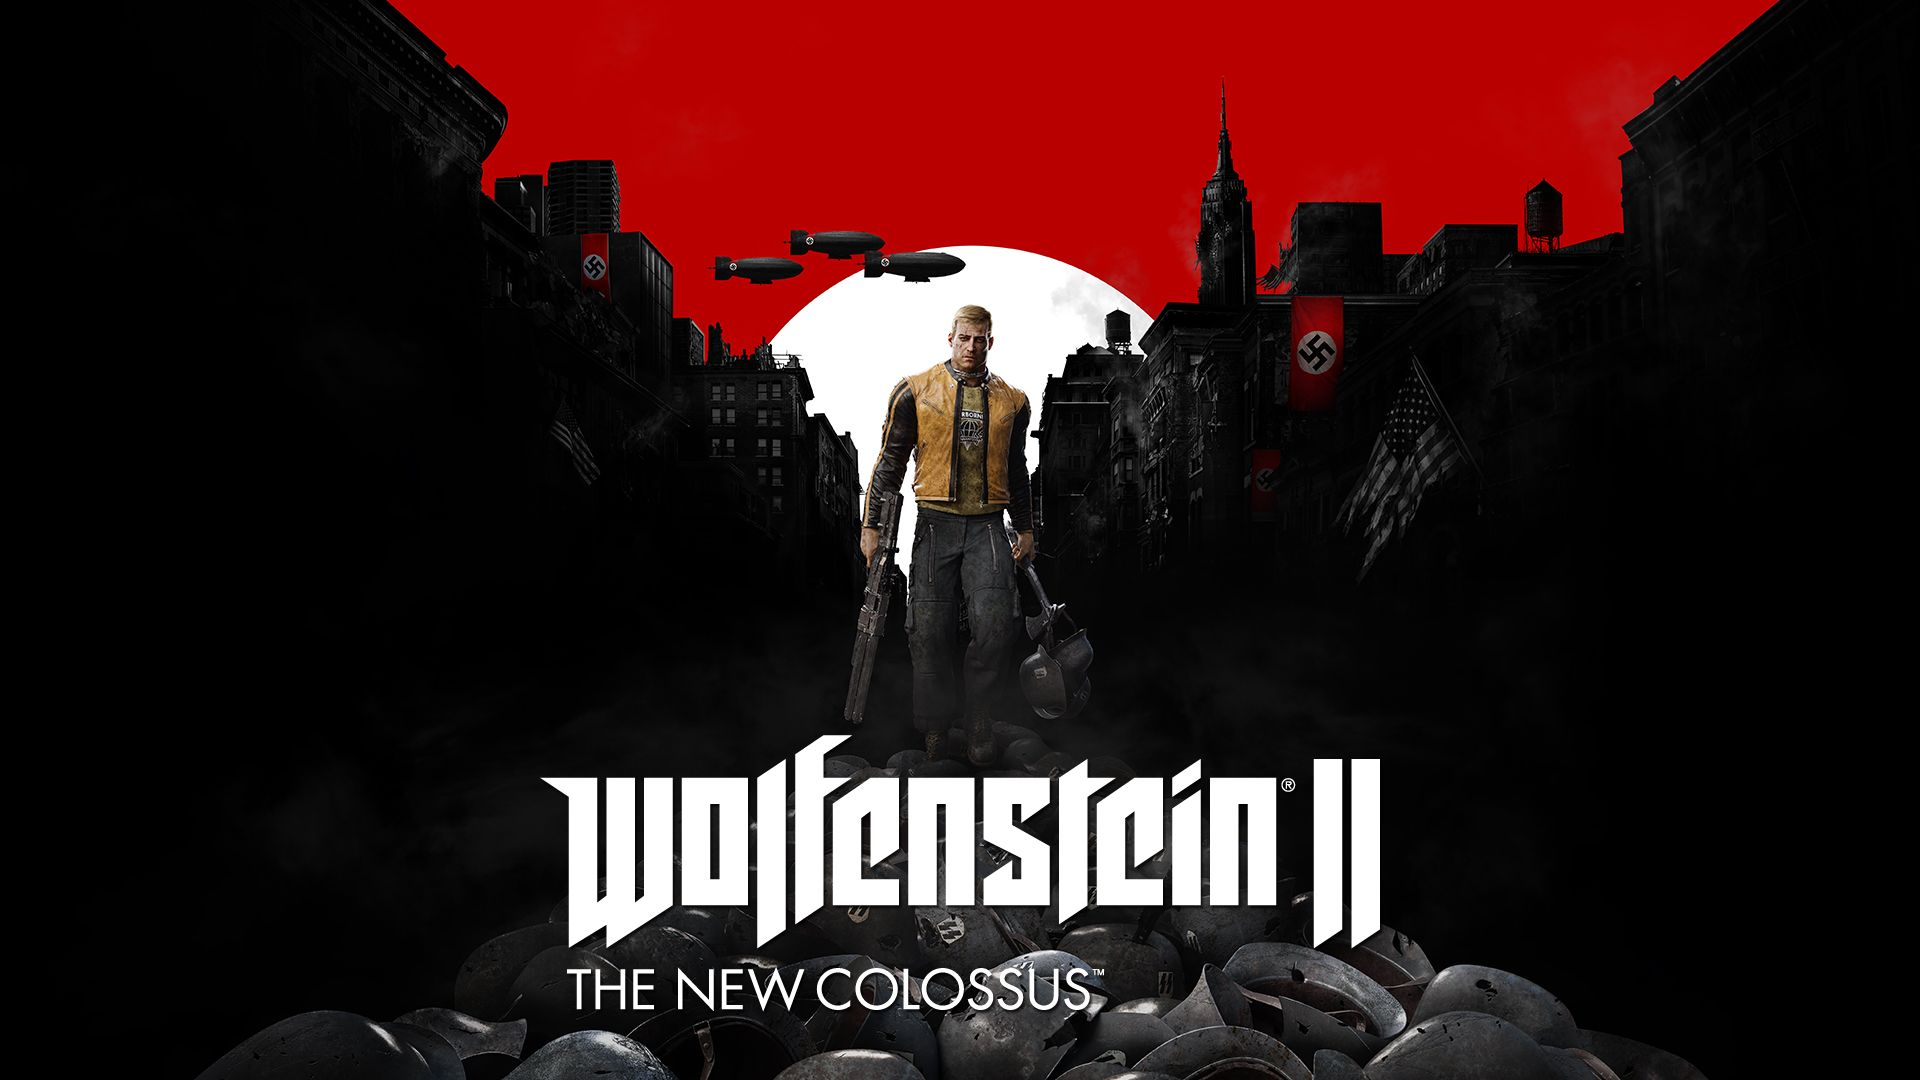 Wolfenstein II: The New Colossus si mostra in un altro video gameplay.